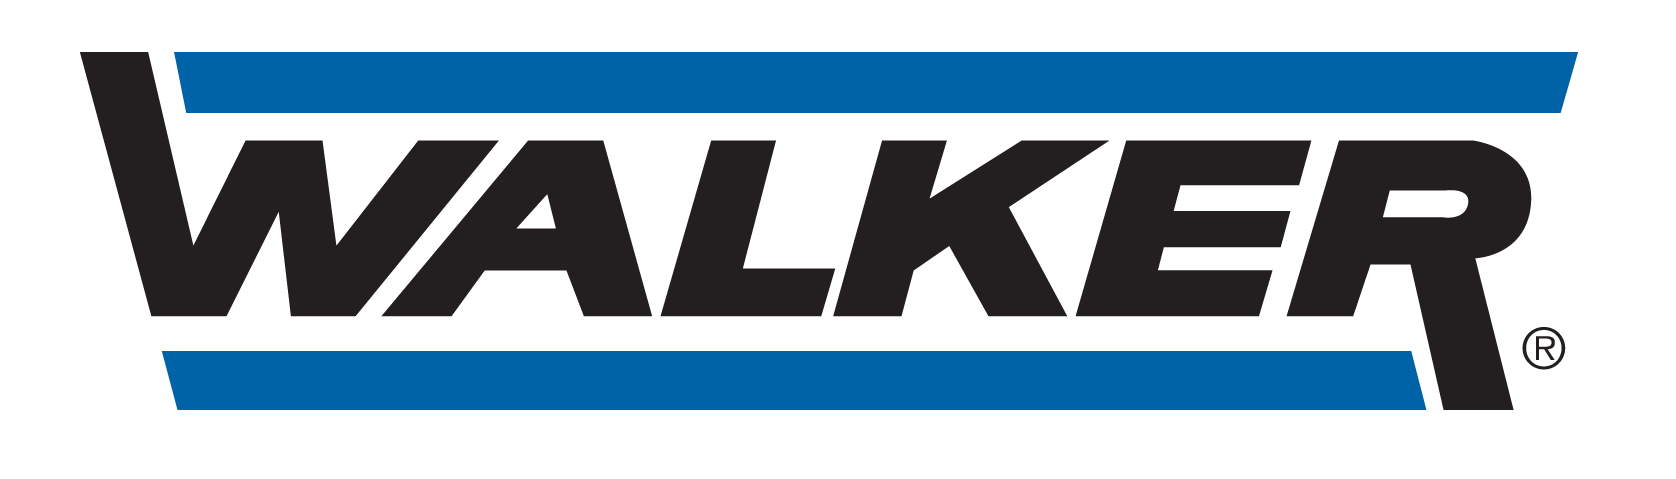 GARAGE NEW DEAL AUTOMOBILES - logo Walker